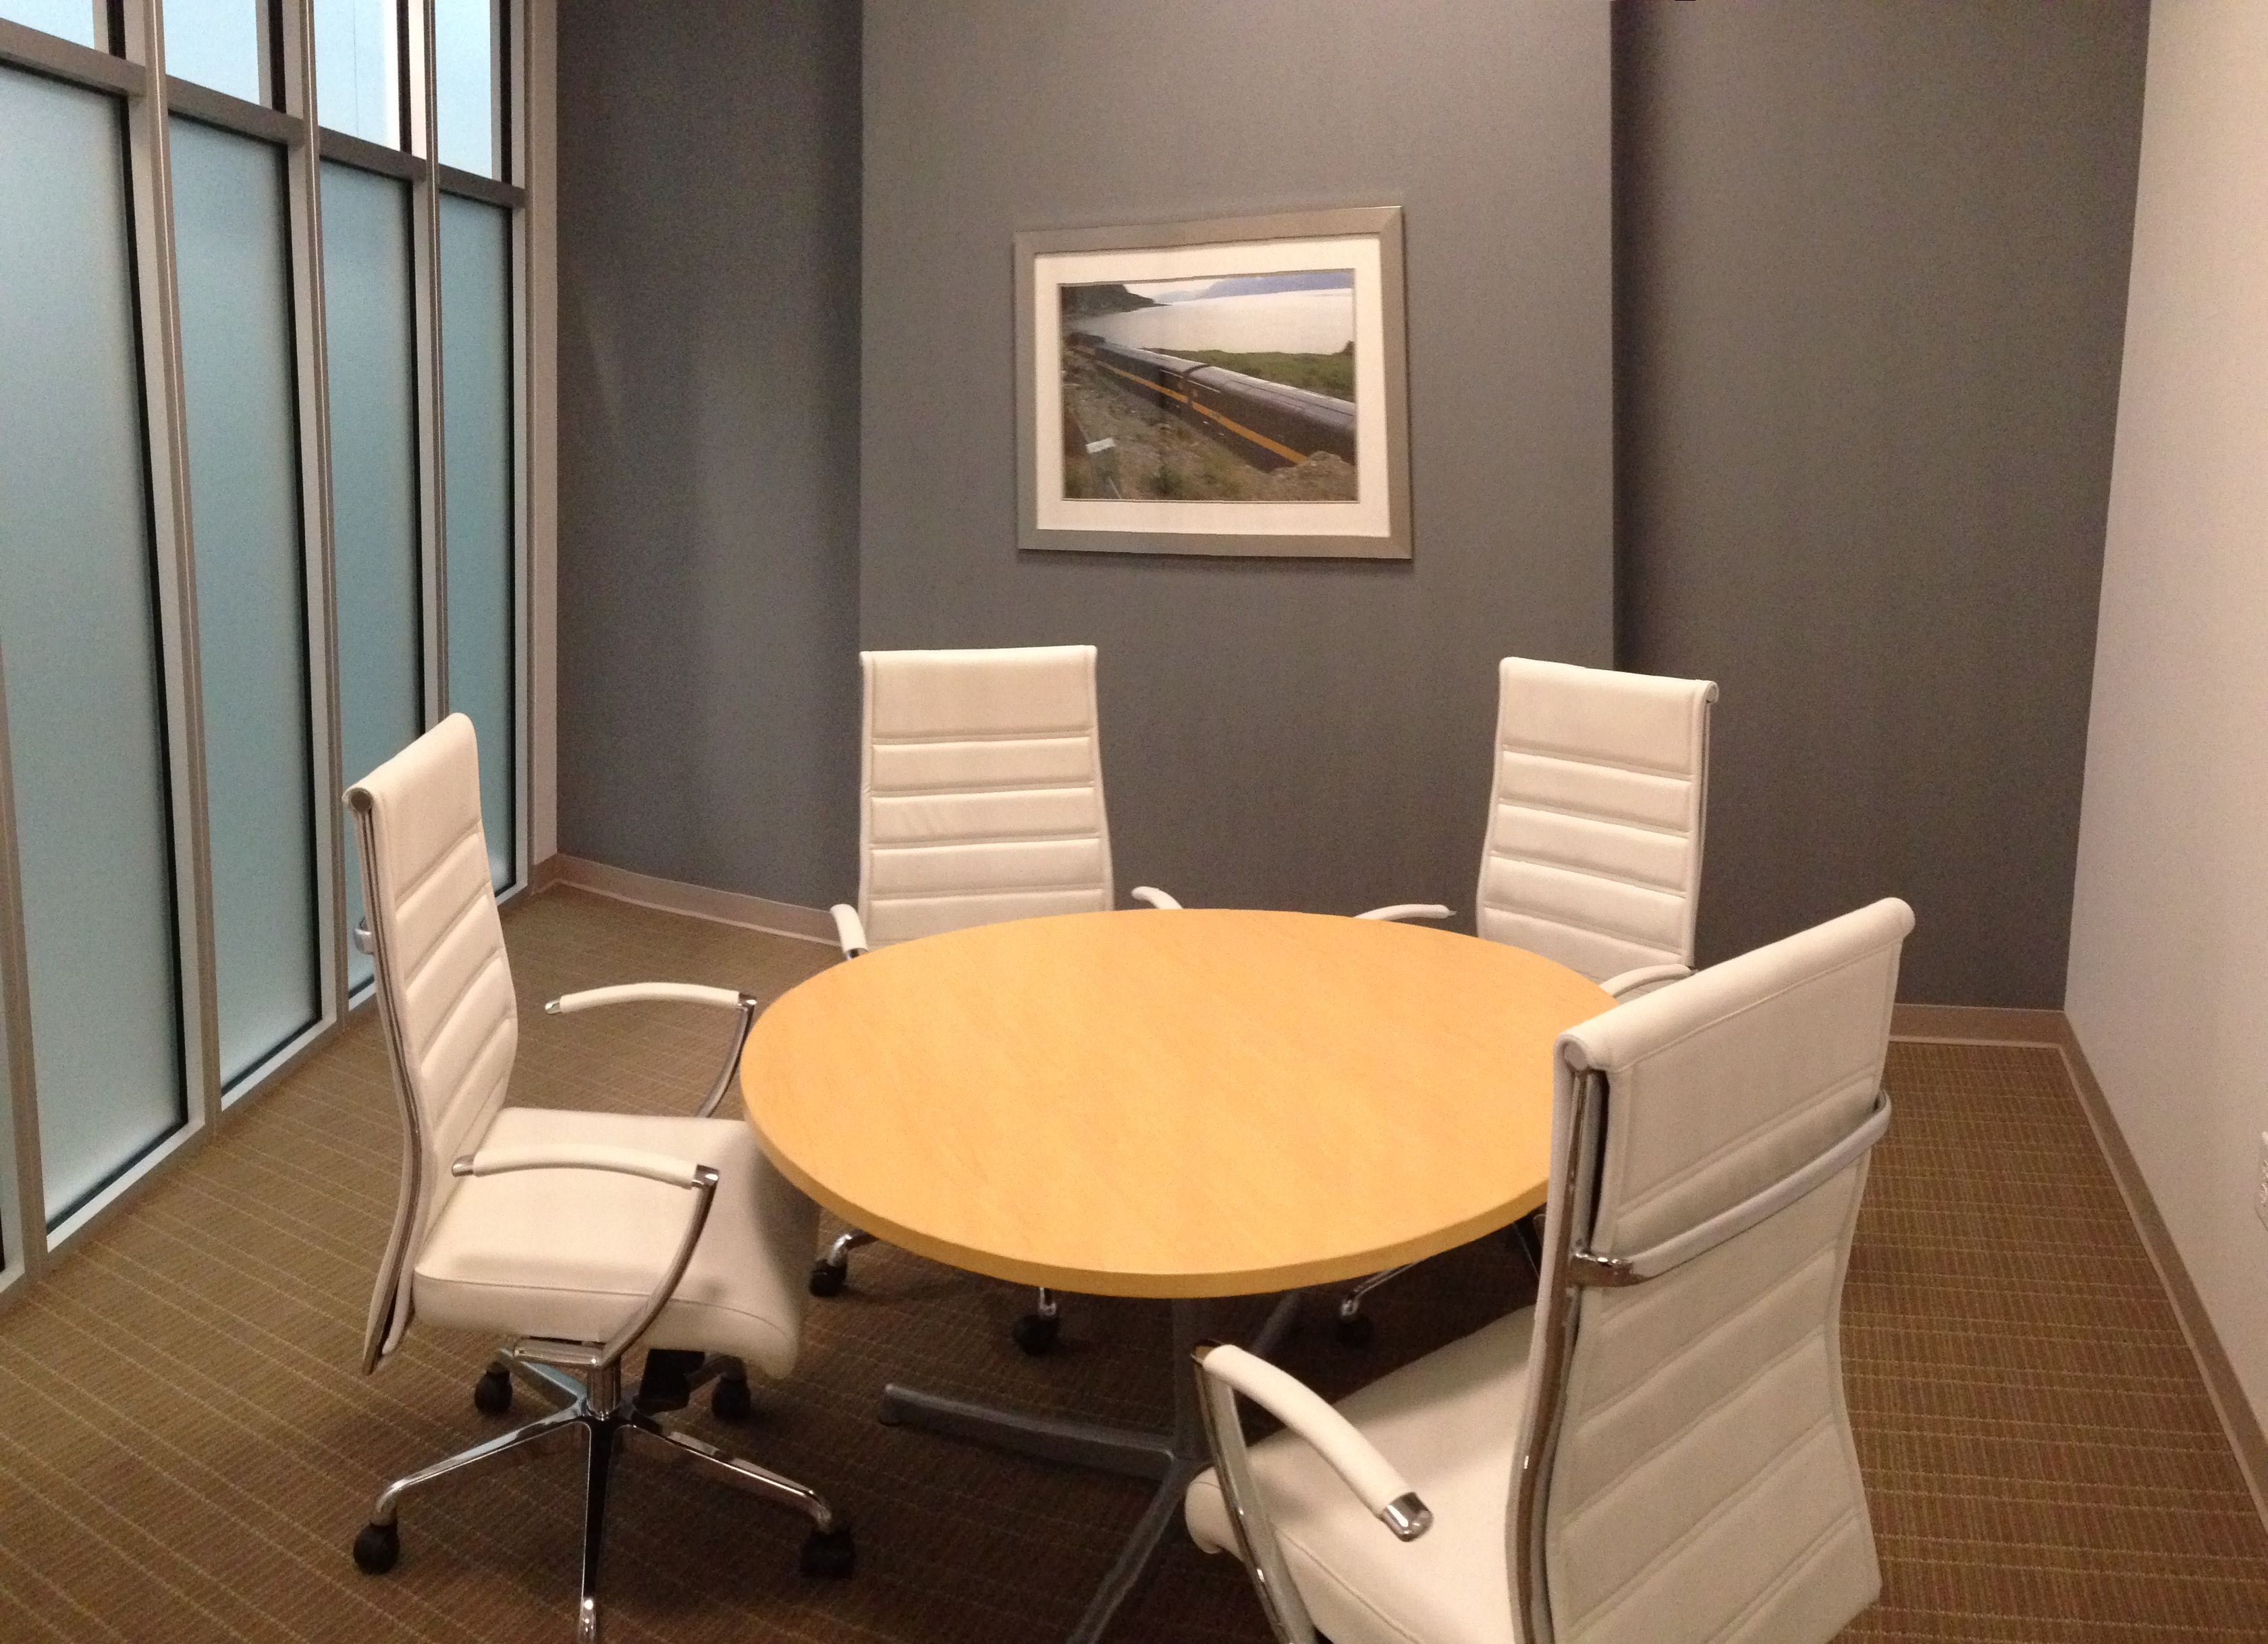 Small conference room interior projects cda architects for Meeting room interior design ideas